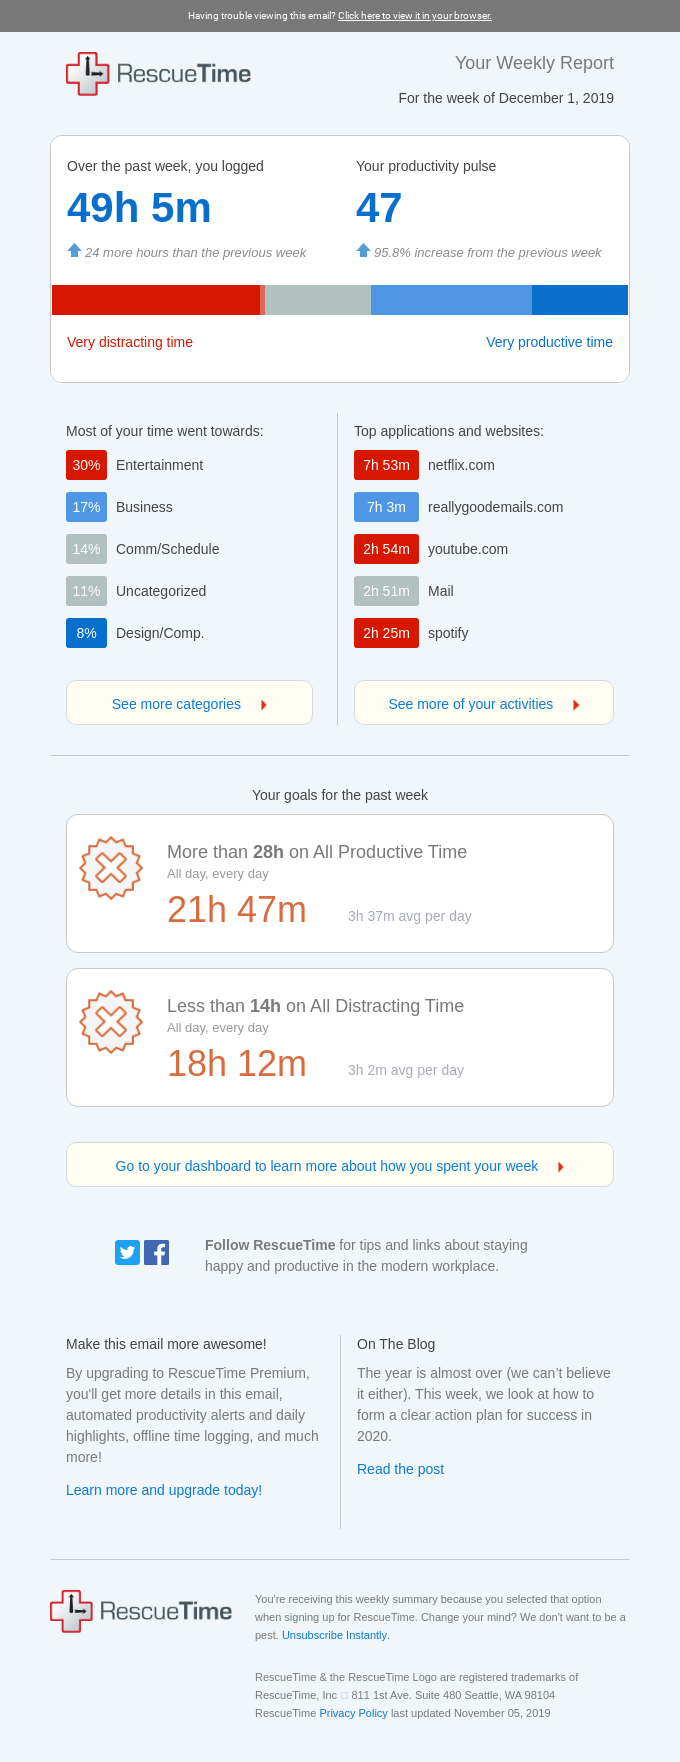 14h 35m of Entertainment this week - RescueTime Weekly Summary